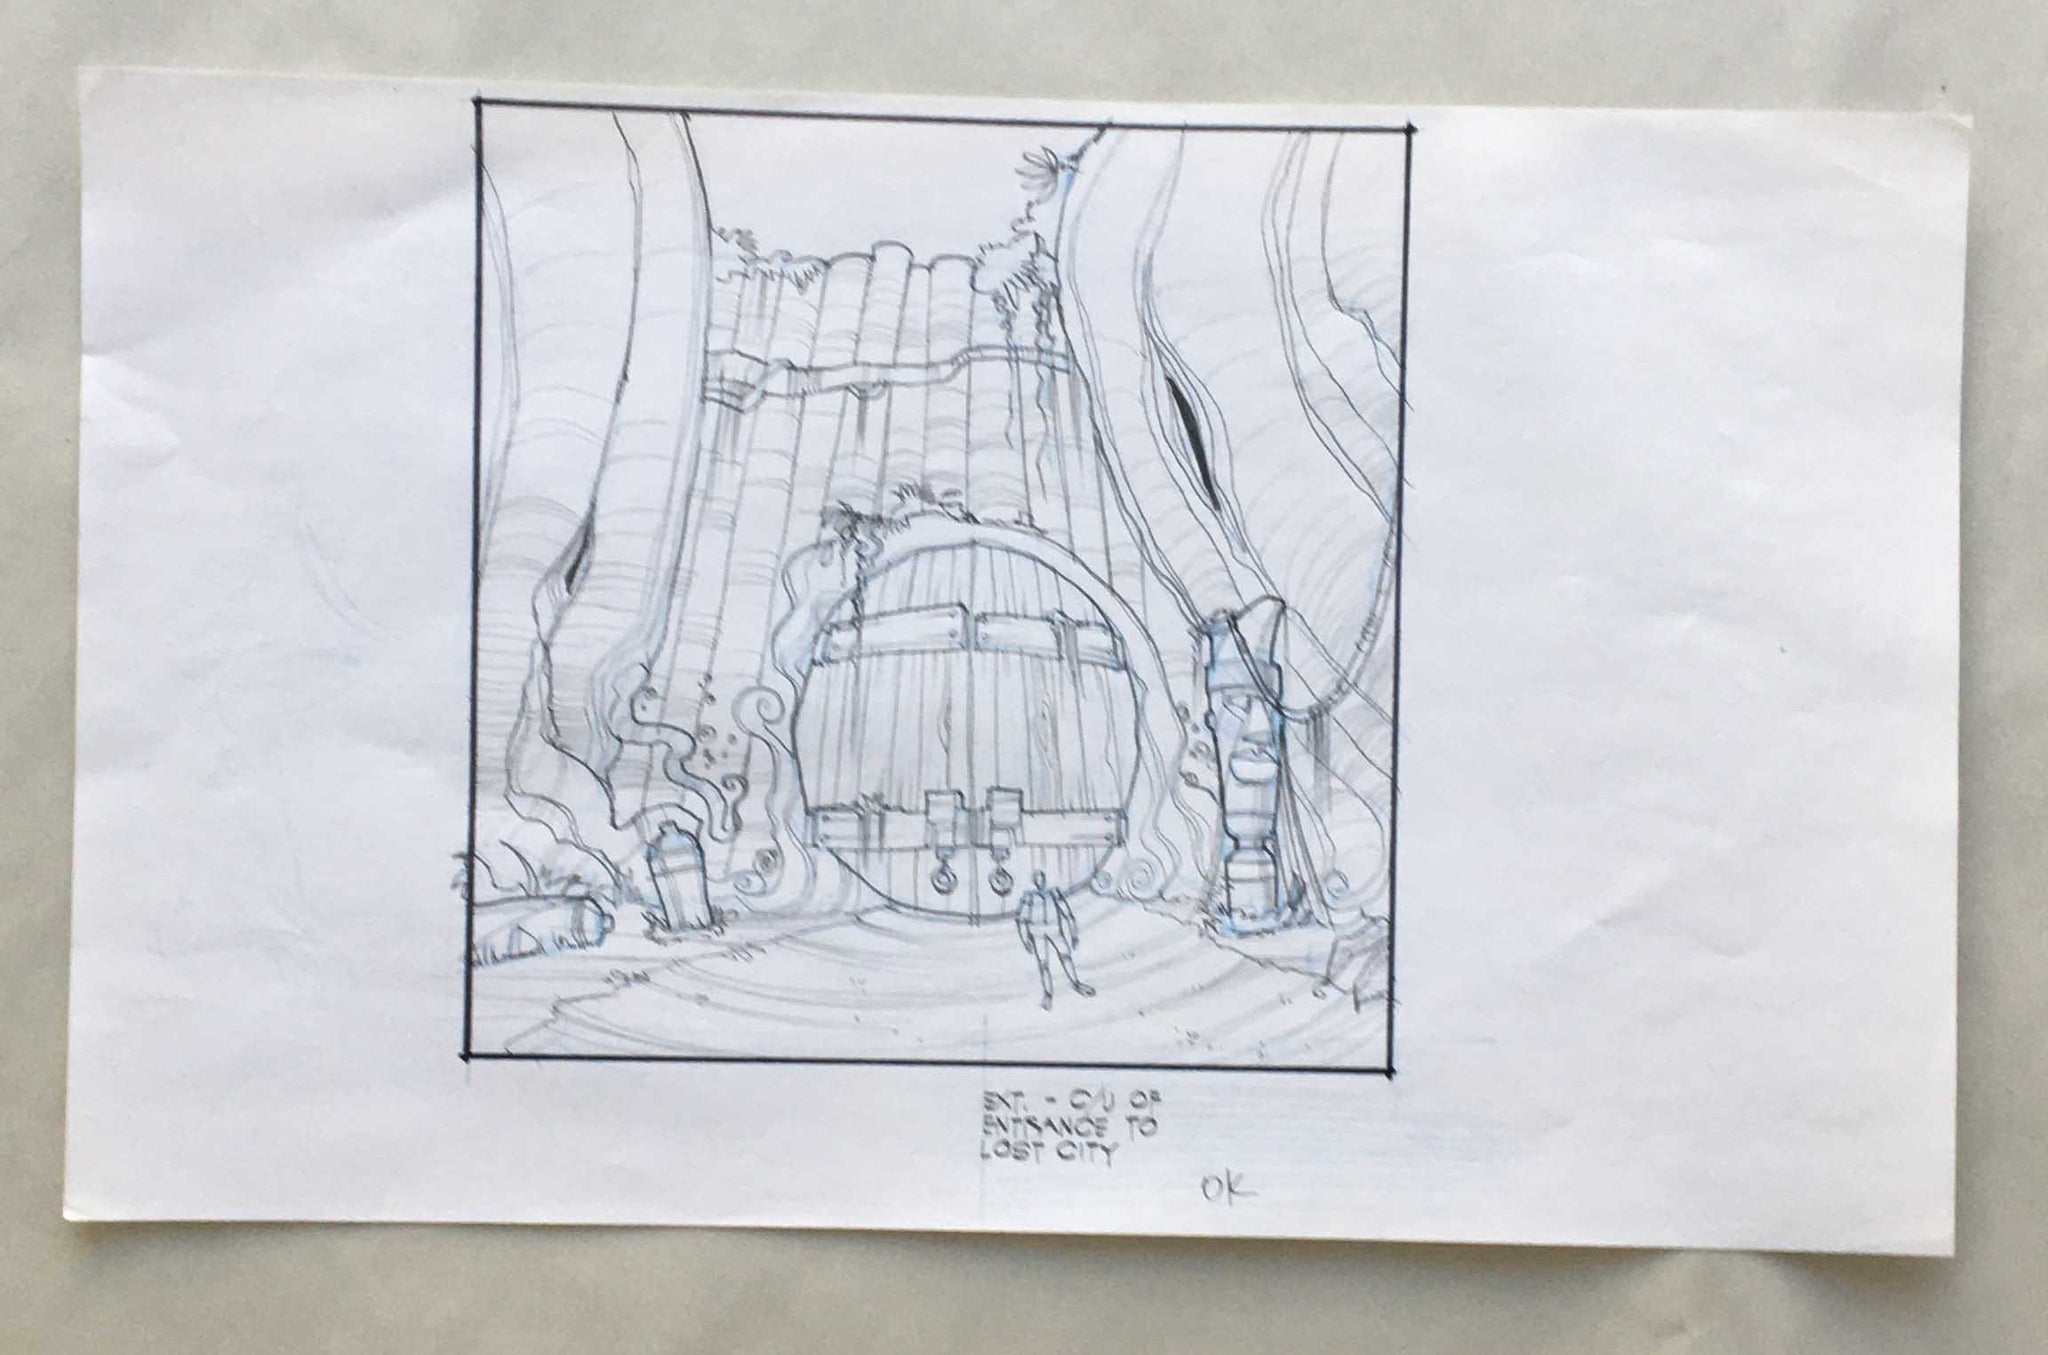 Donkey Kong Country Lost City Entrance Sketch Art (EX0259) - Animation Legends